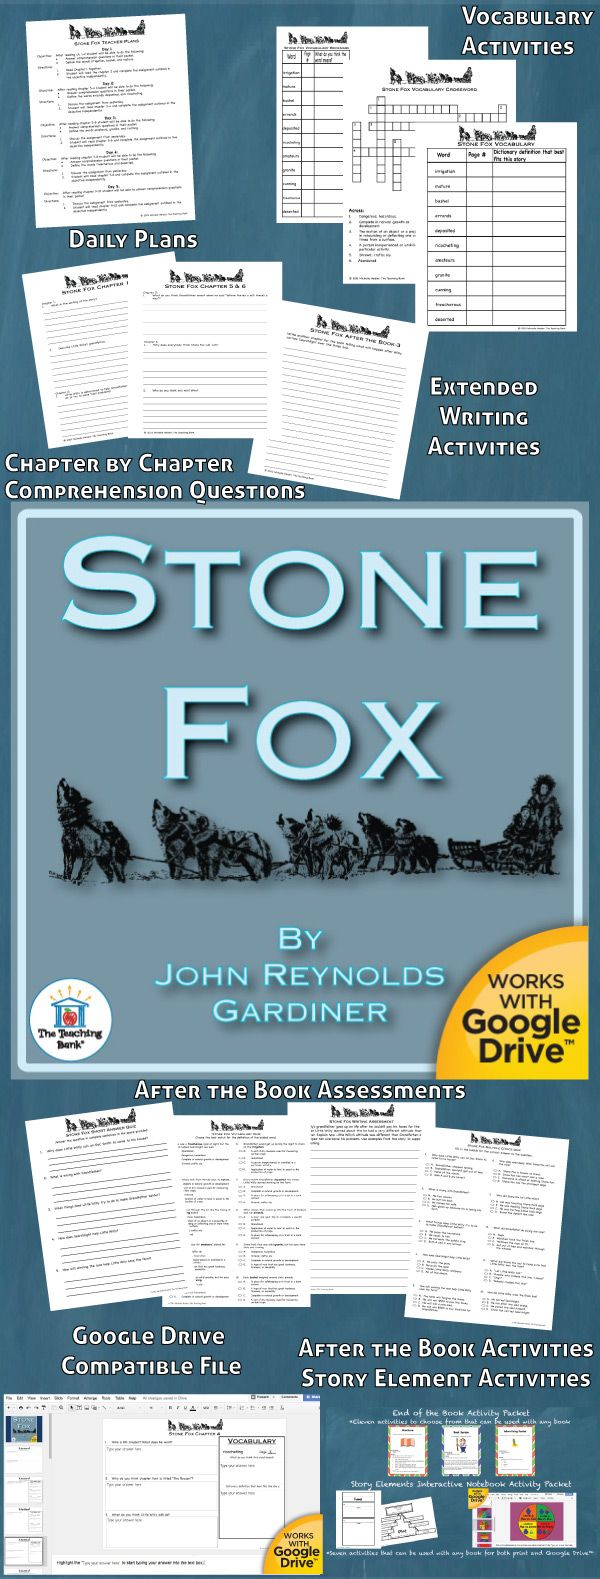 Stone Fox Novel Study is a Common Core Standard aligned book unit to be used with Stone Fox by John Reynolds Gardiner. This download contains both a printable format as well as a Google Drive™ compatible format.